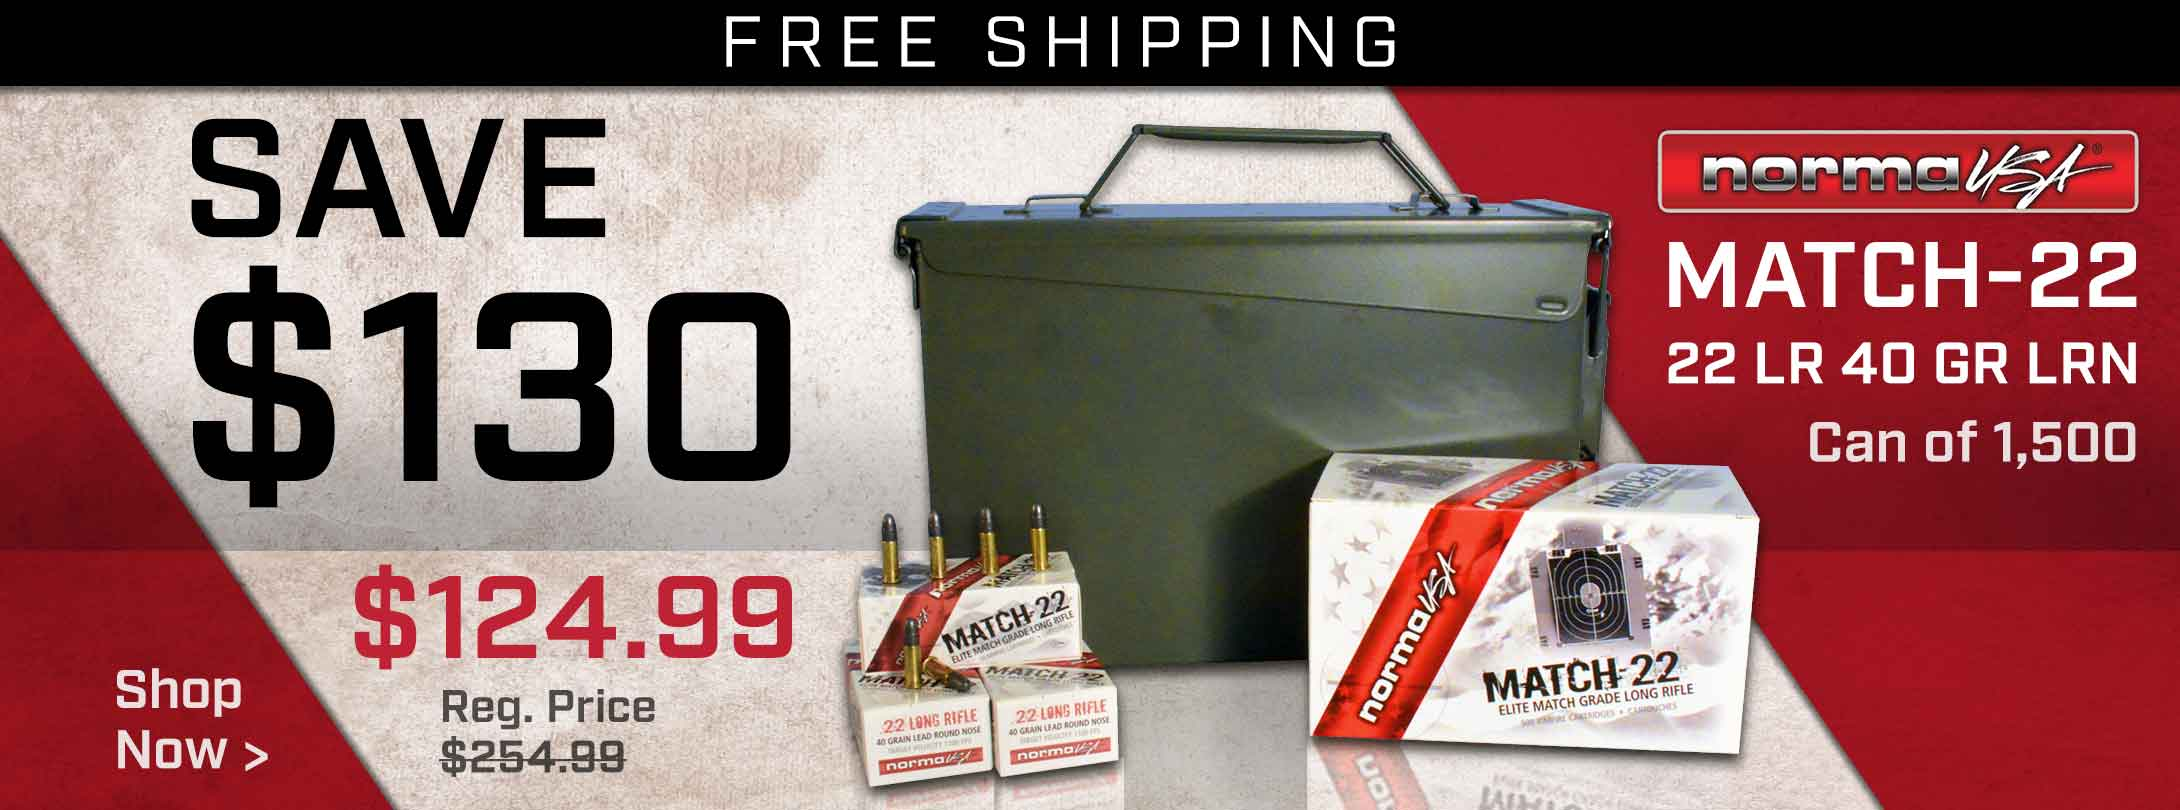 Save on Norma Match-22 Ammo!